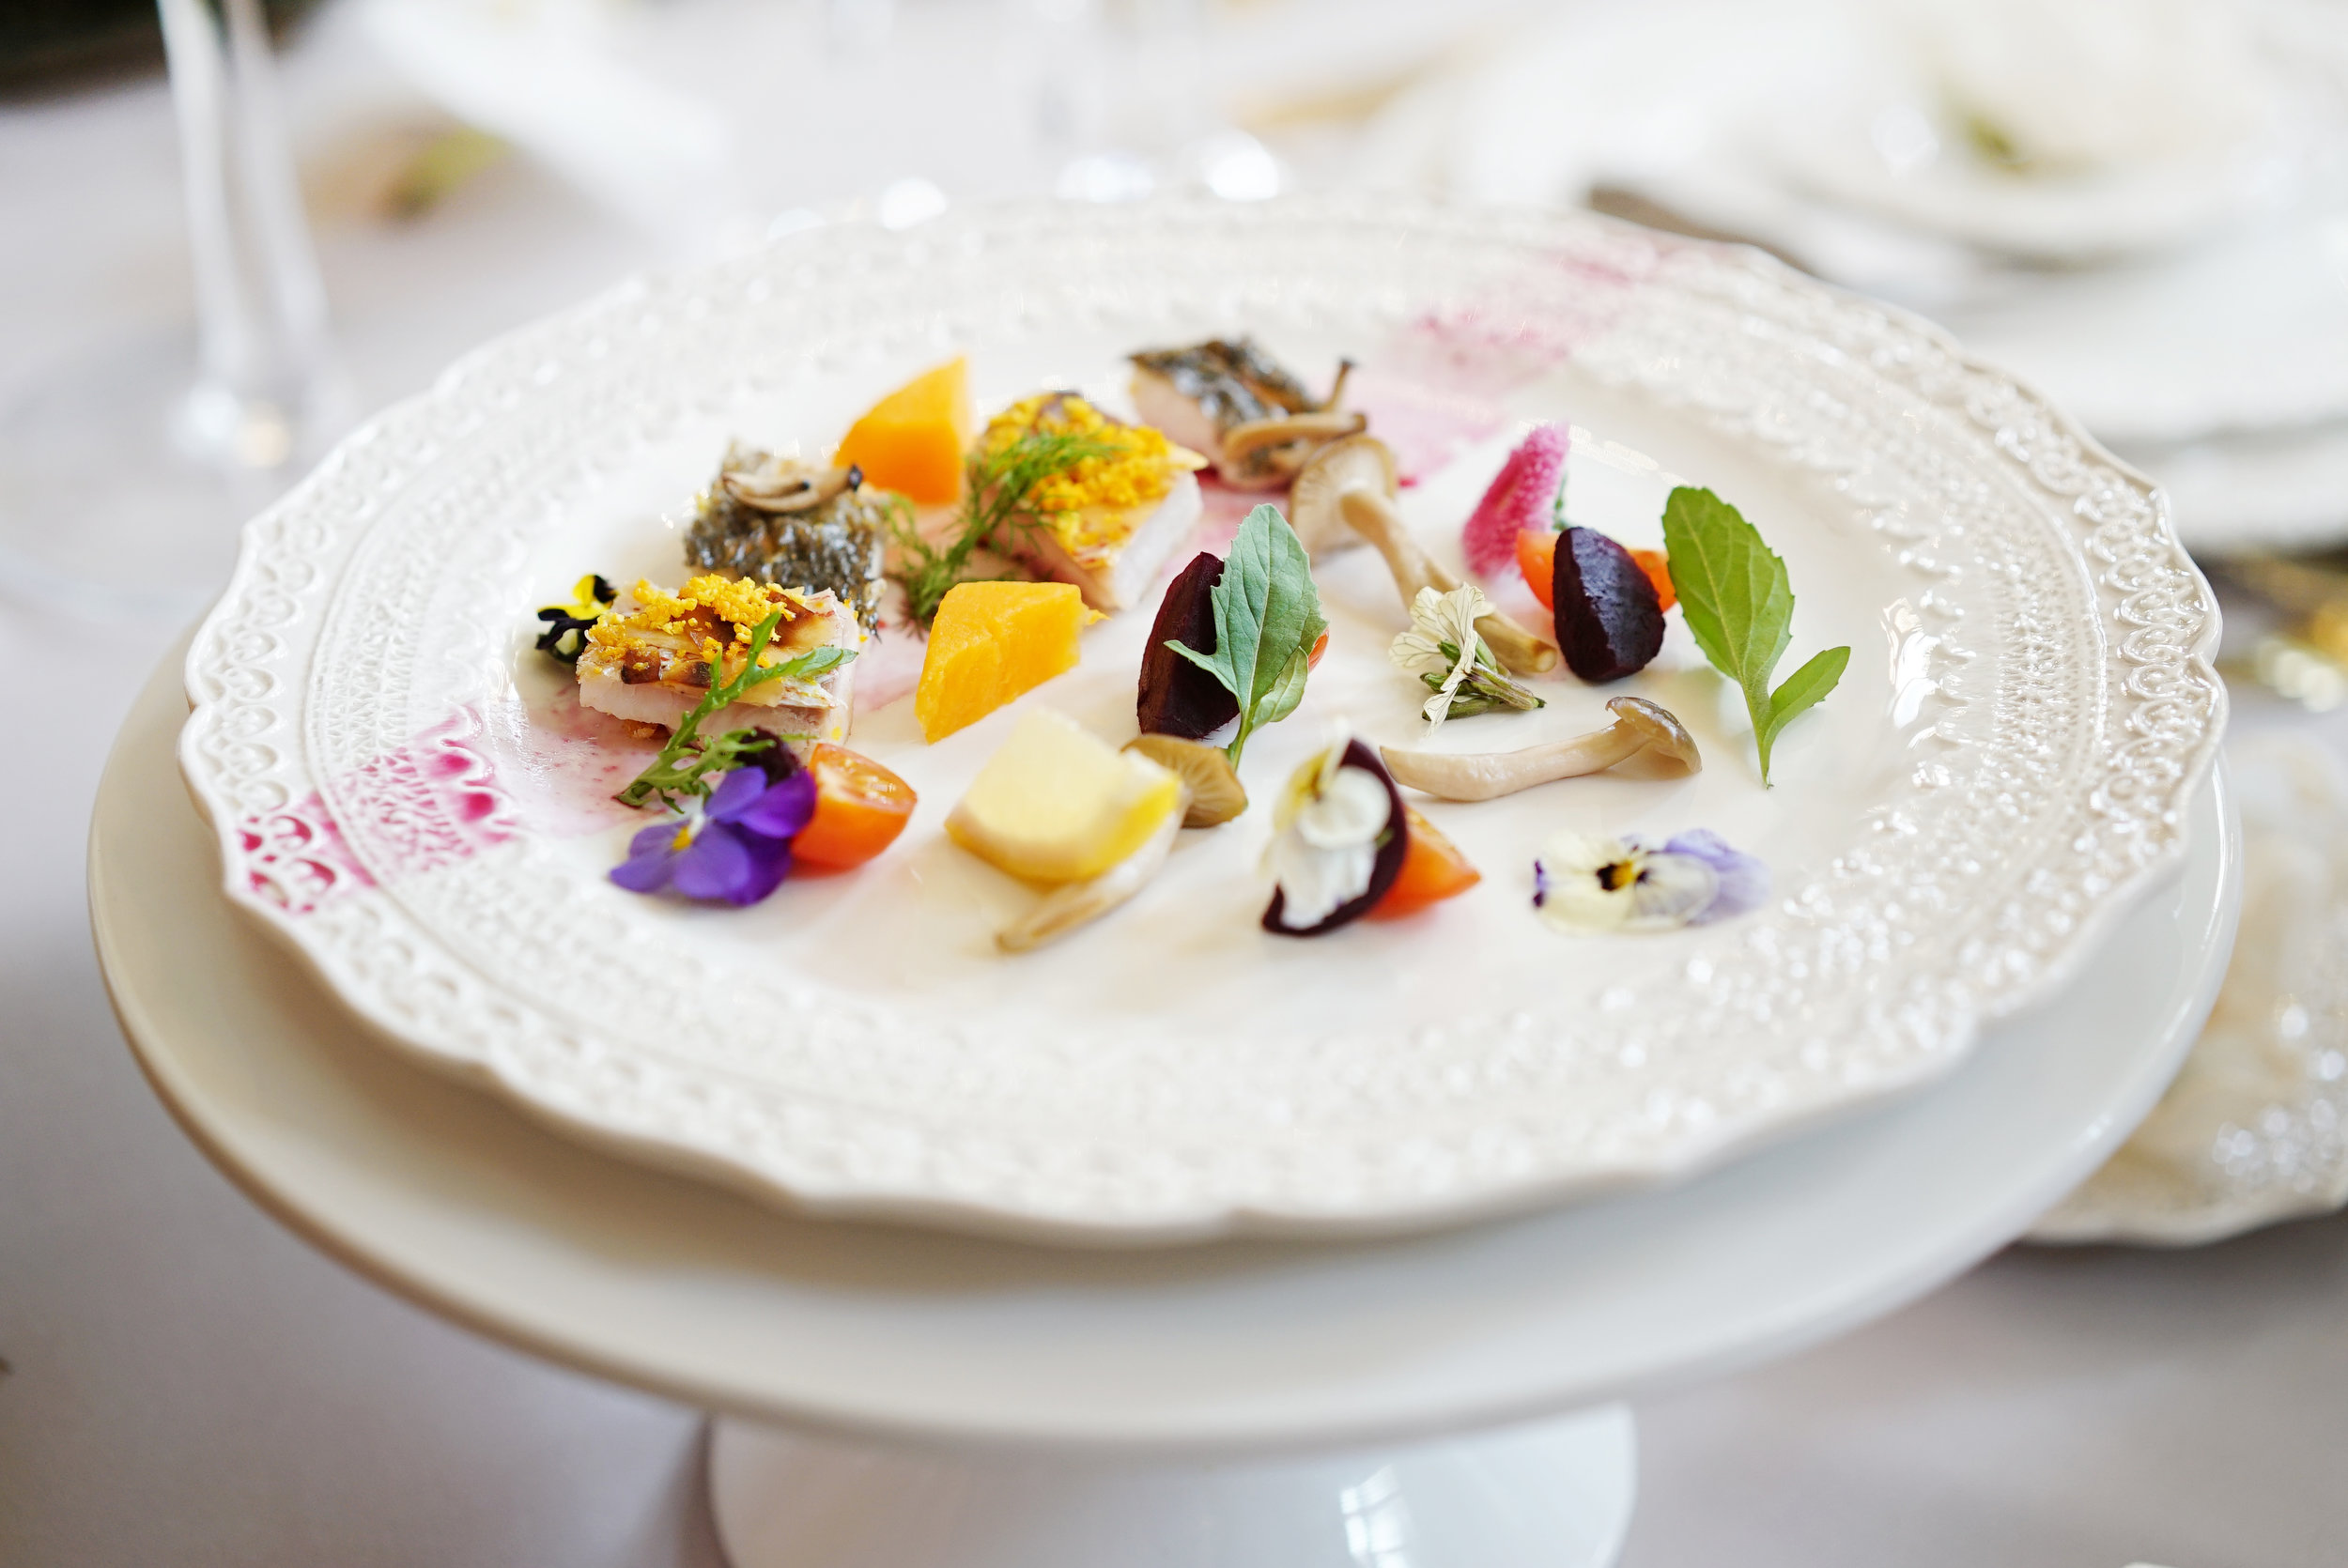 Wedding Catering Inspiration - Red mullet and Sea bass with Enoki mushroom baby root vegetables & orange zest